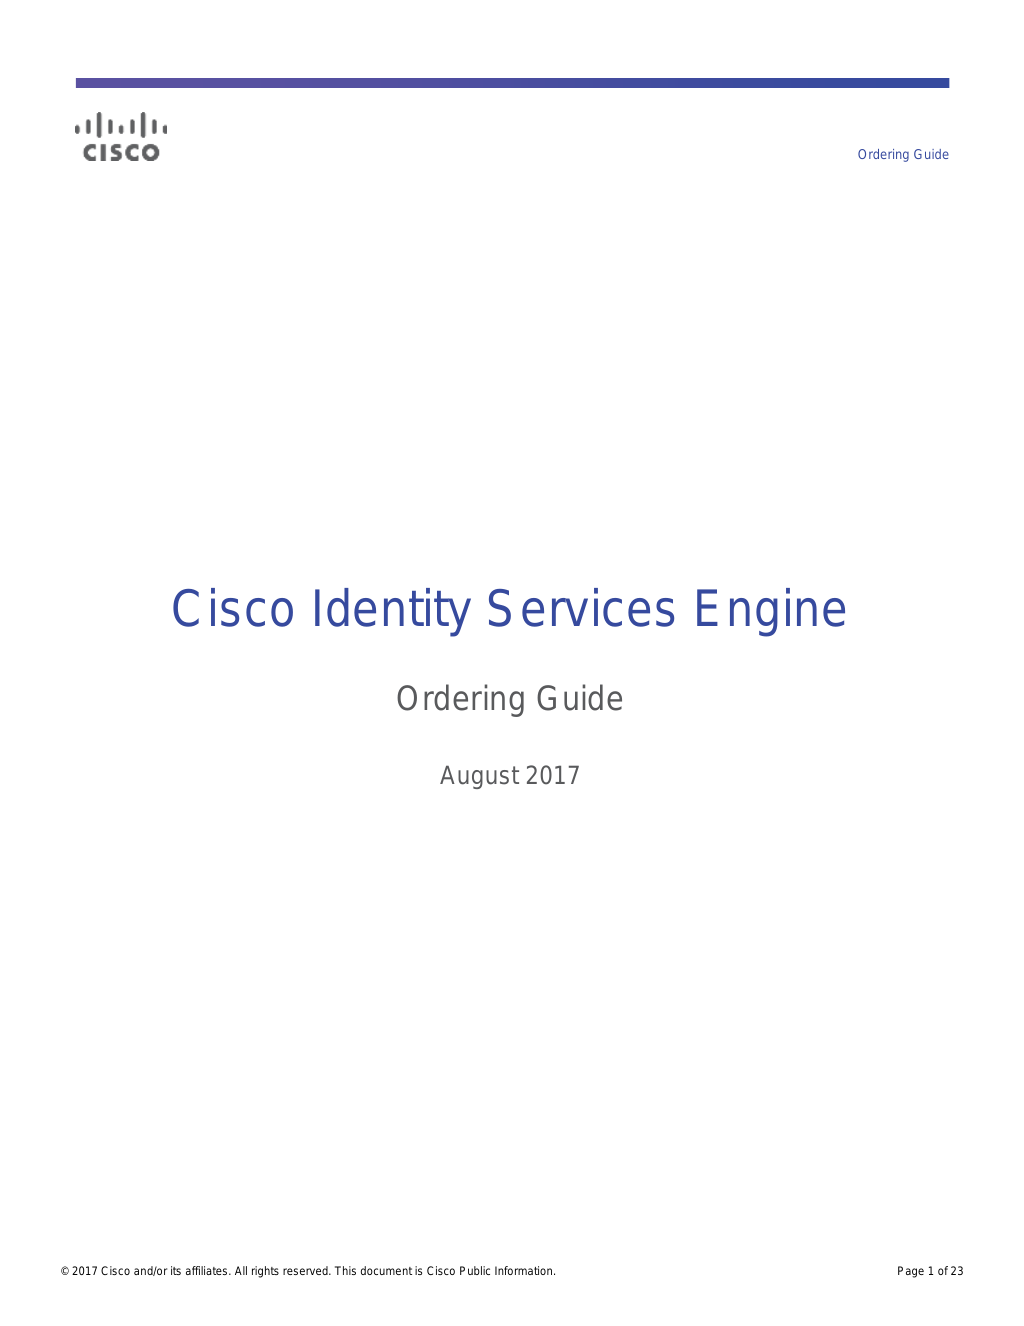 Cisco ISE 2 3 Installation Guide